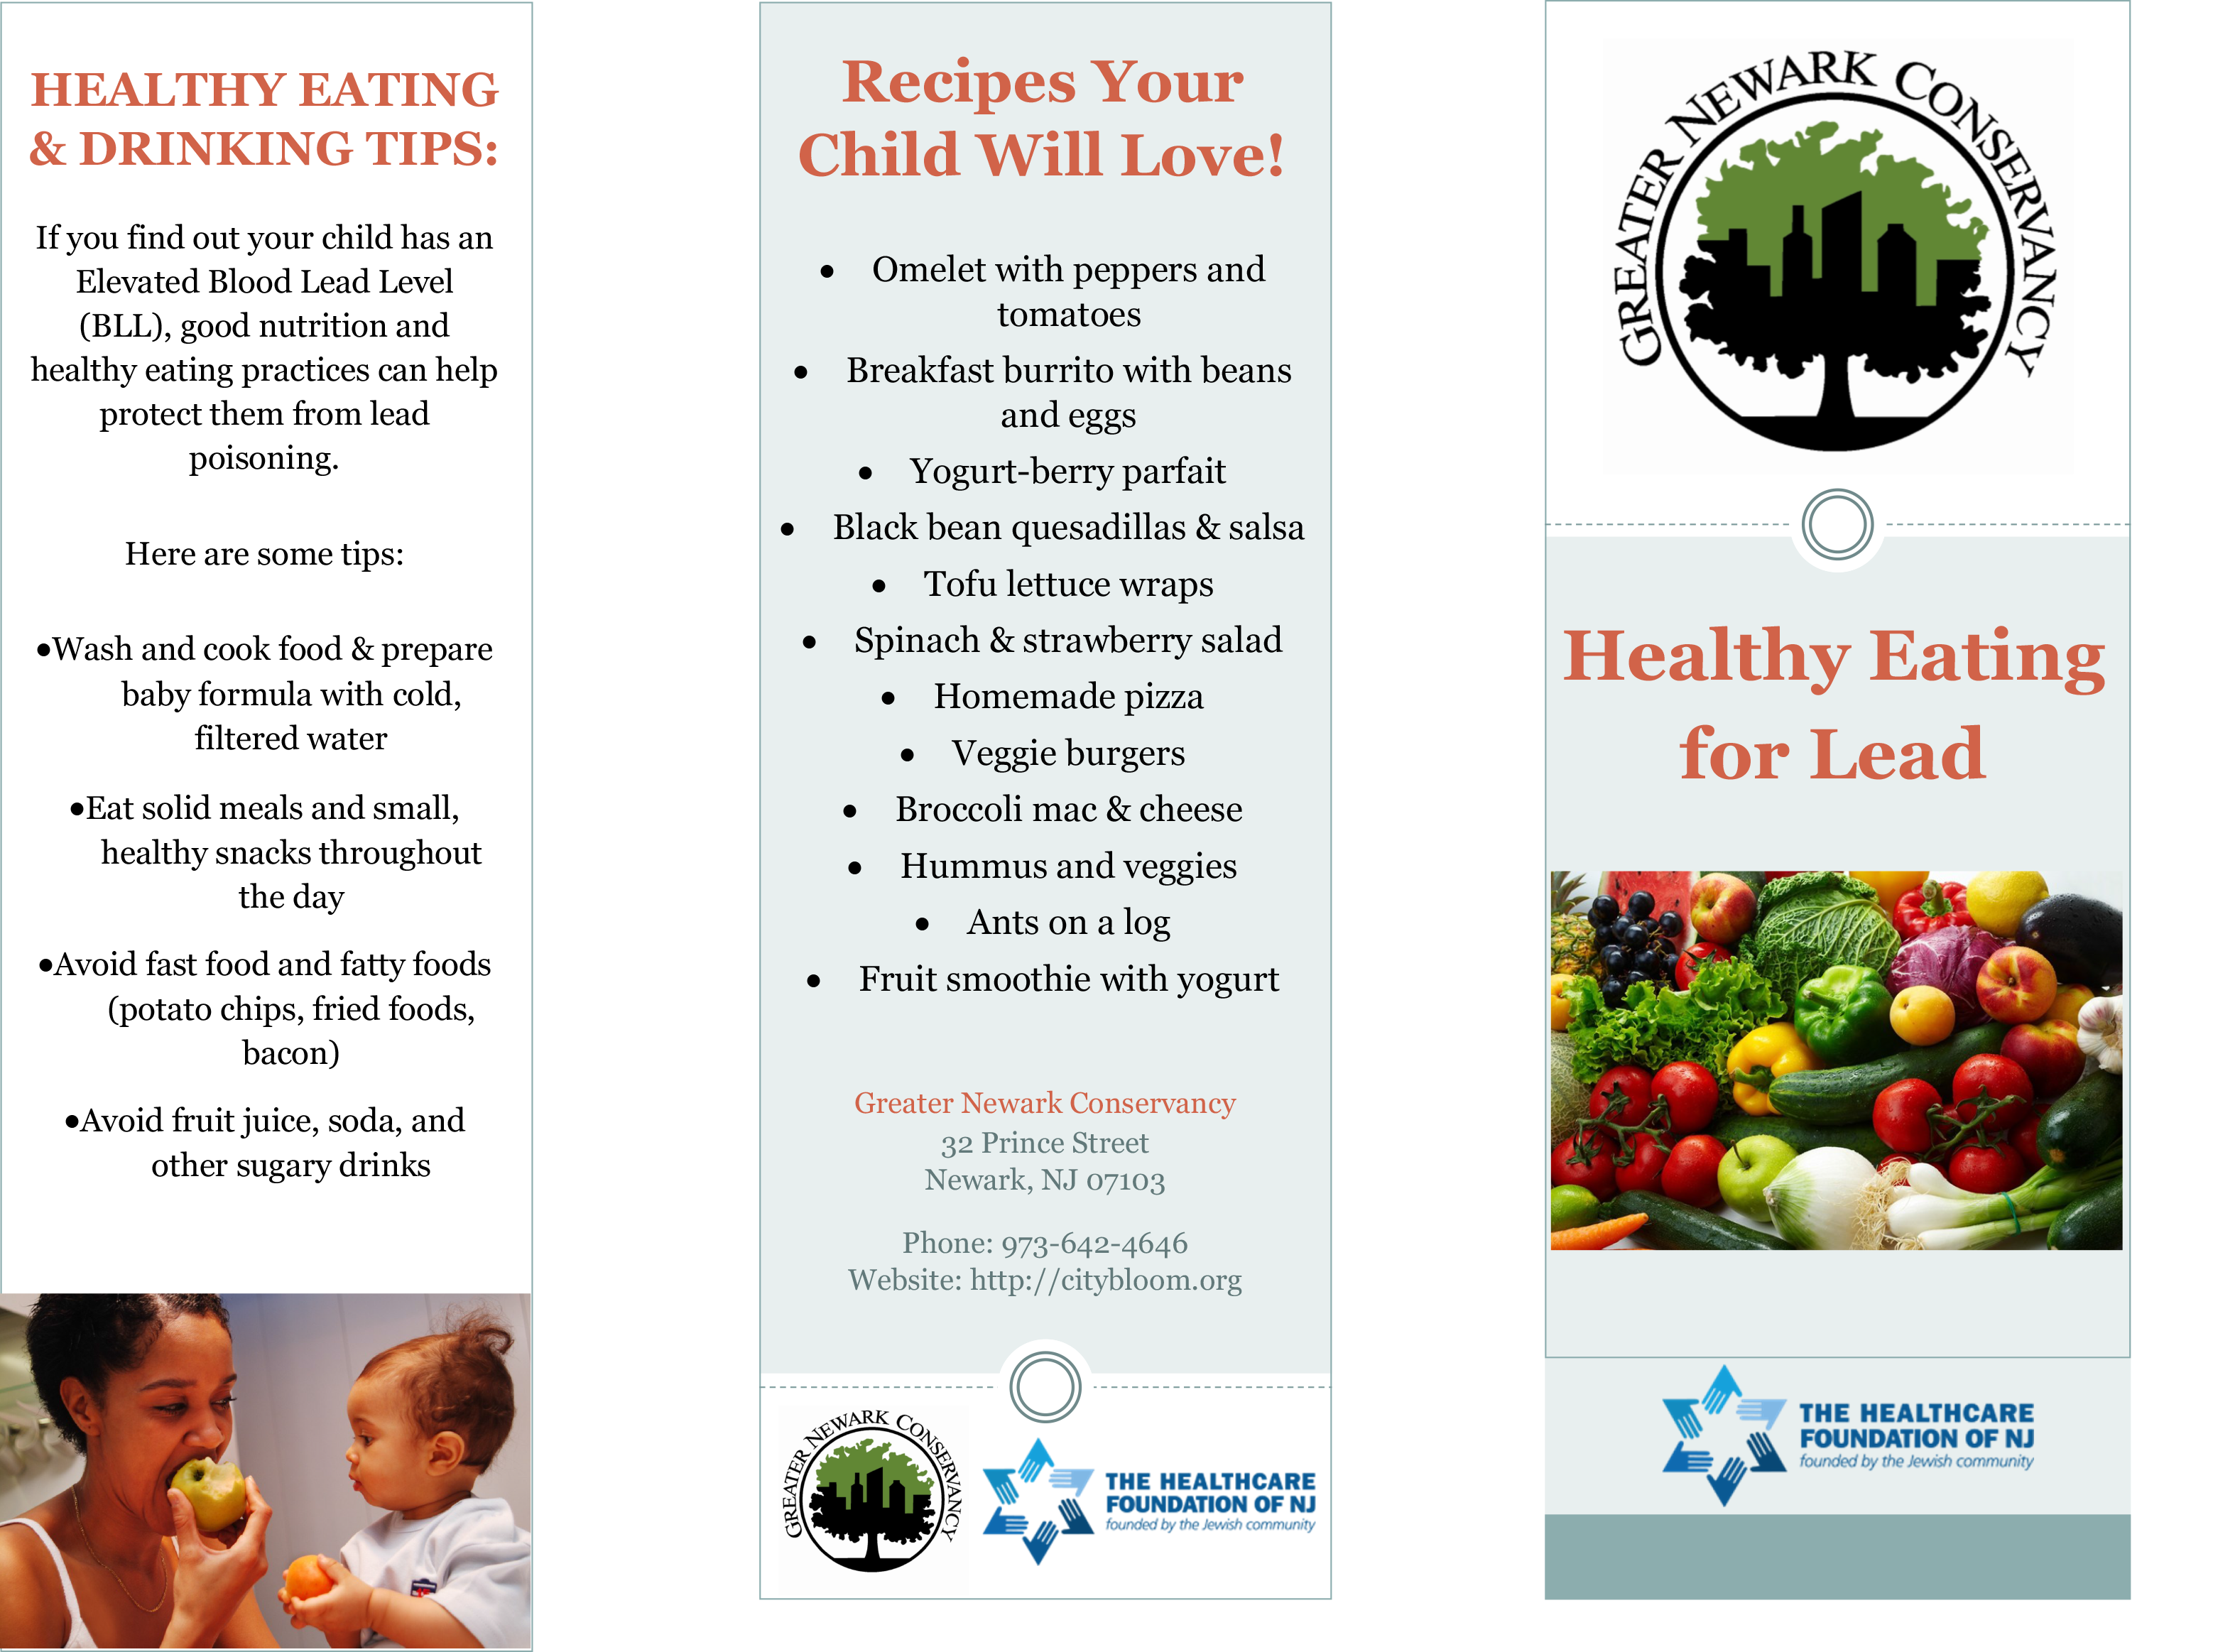 Healthy Eating for Lead